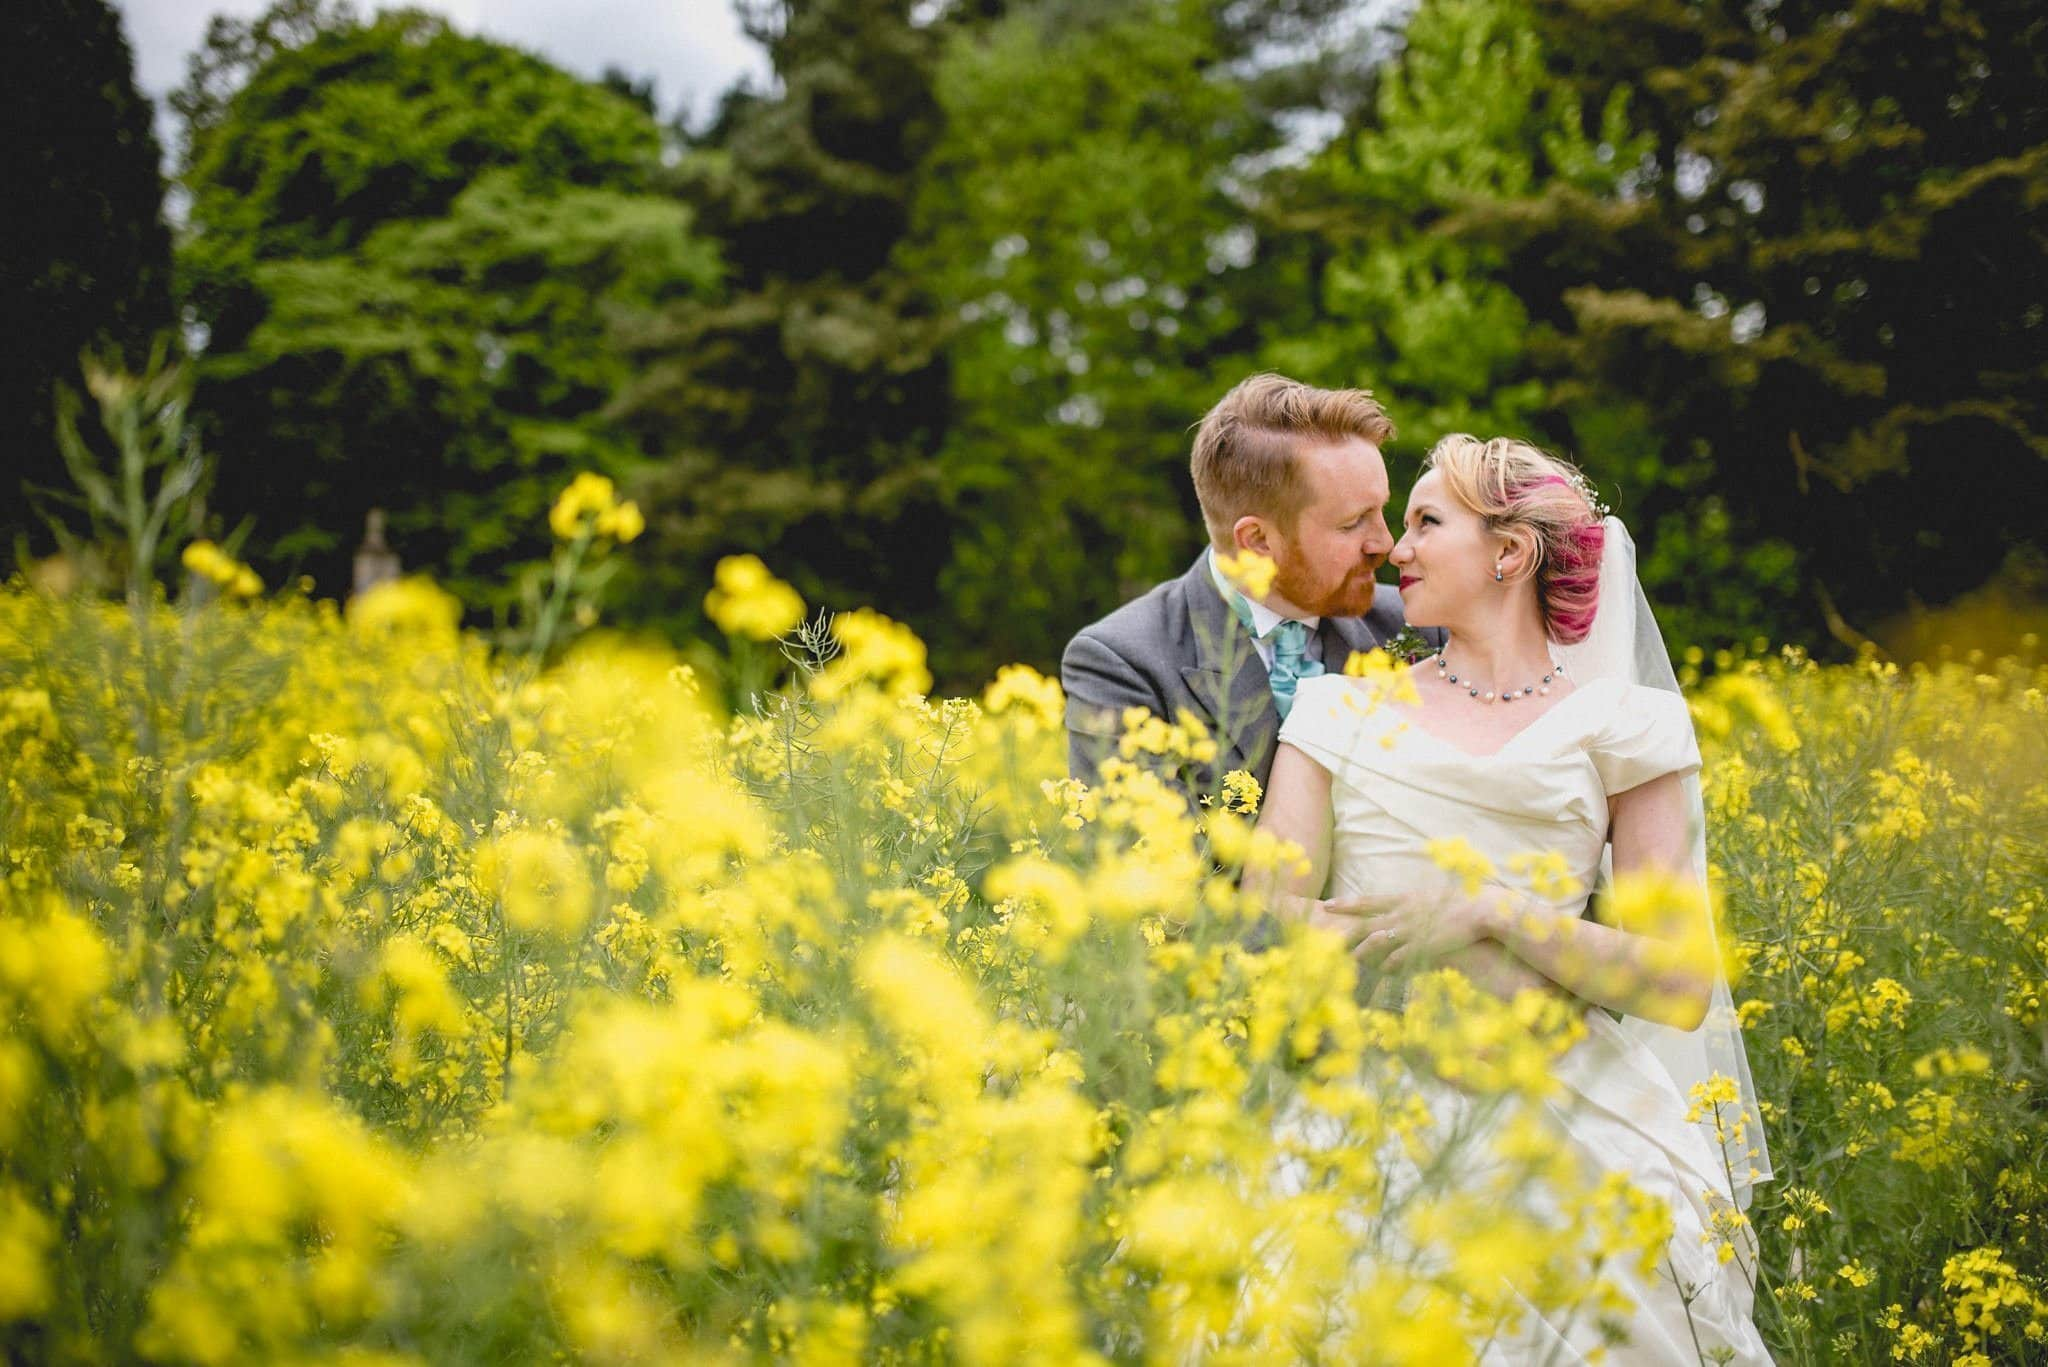 The newlyweds gaze into each others eyes surrounded by bright yellow rapeseed flowers